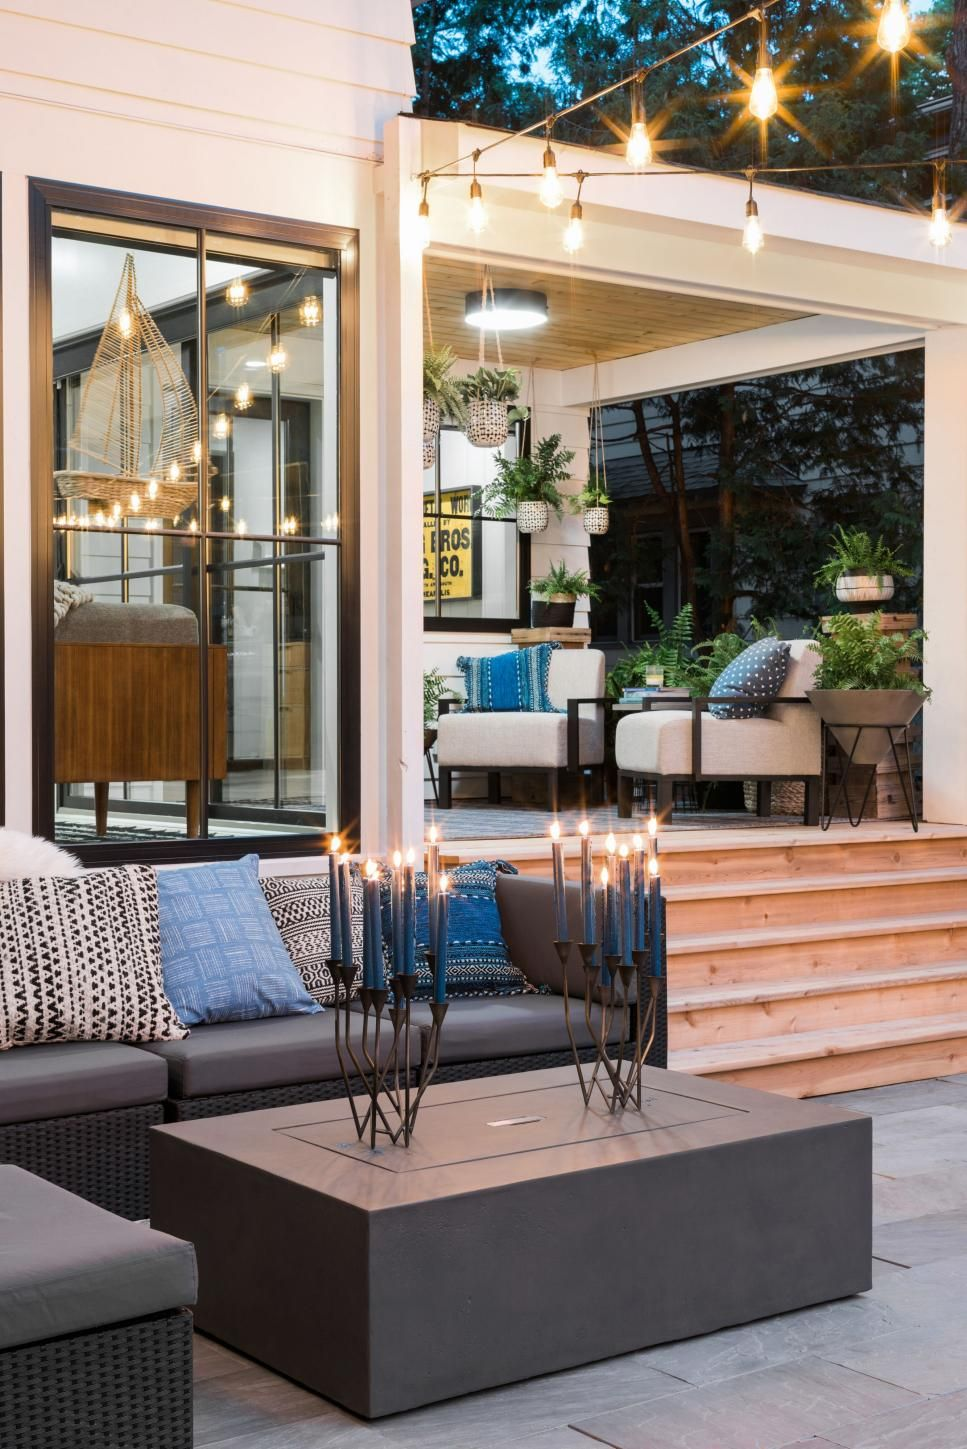 Hygge Design Pictures From HGTV Urban Oasis 2019 | HGTV ... on Urban Living Outdoor id=73682